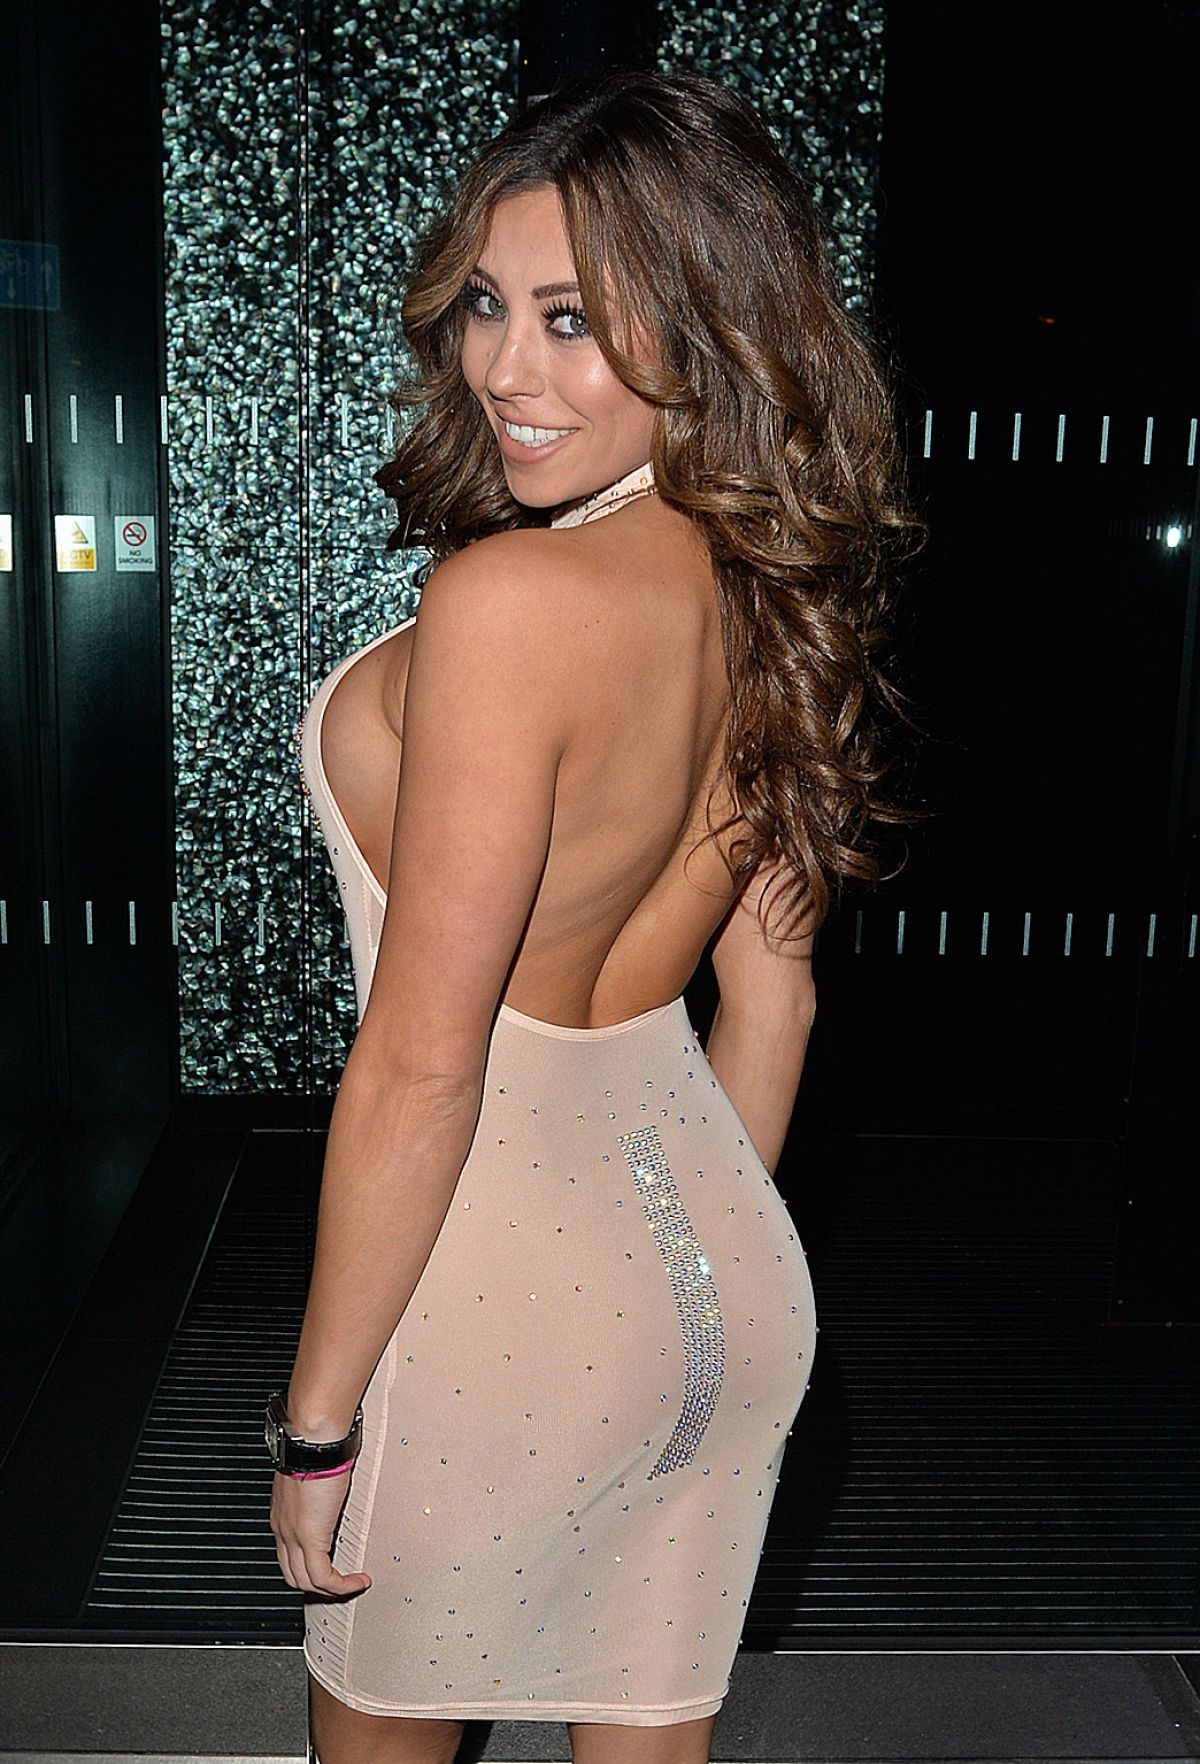 Cleavage Pascal Craymer nudes (62 photos), Pussy, Bikini, Twitter, braless 2019